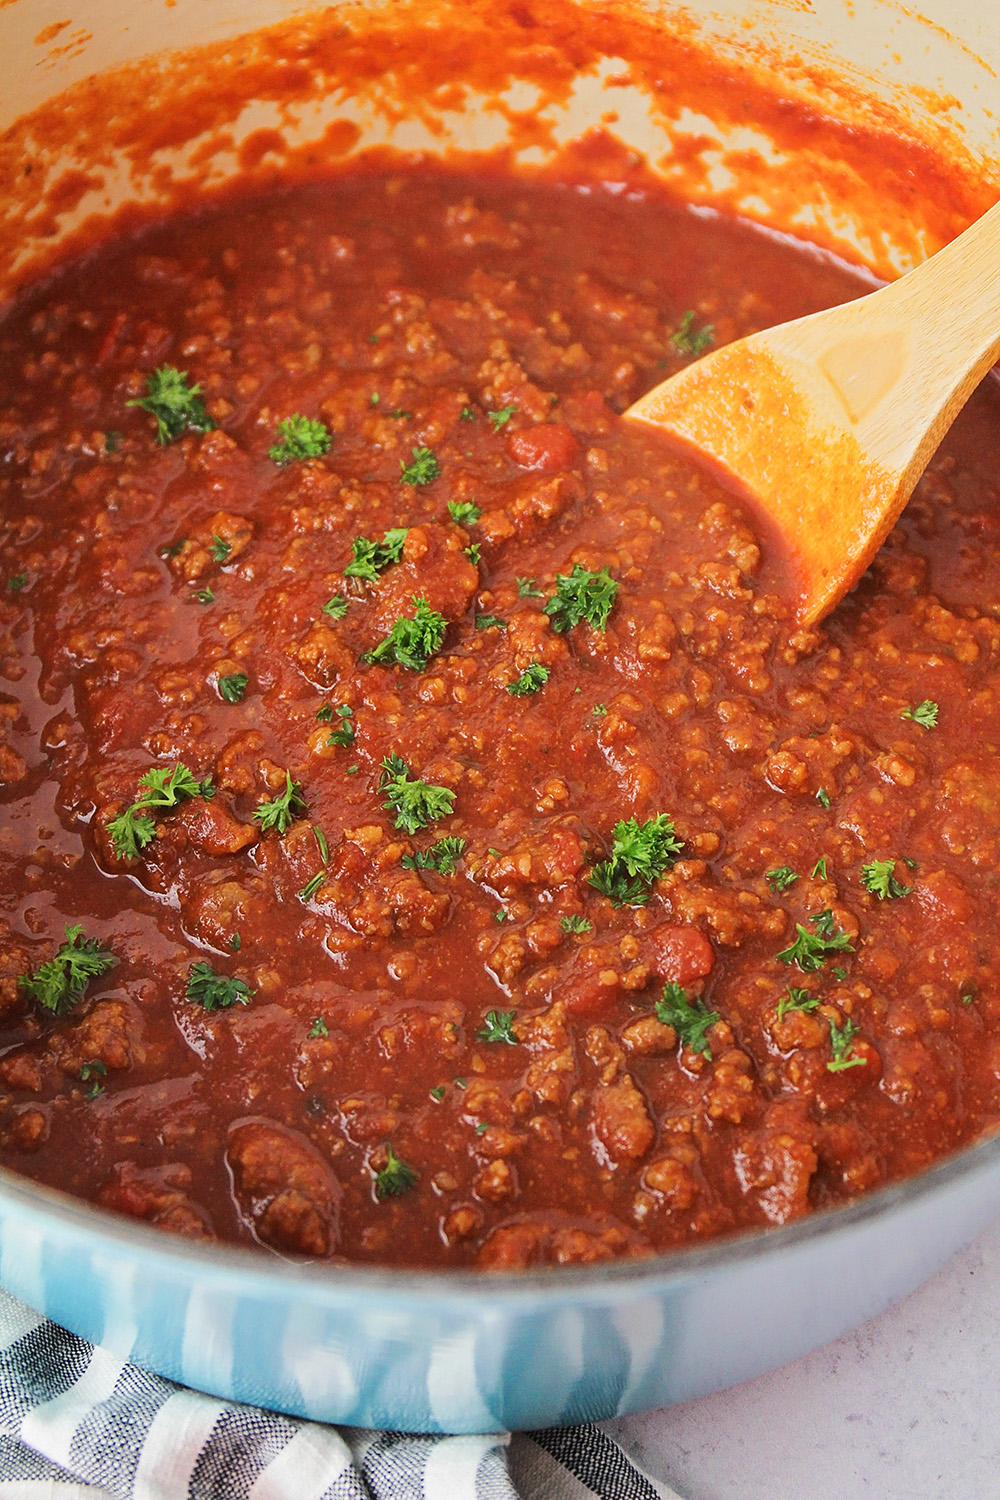 This rich and meaty spaghetti sauce is simple to make, and full of delicious flavors!